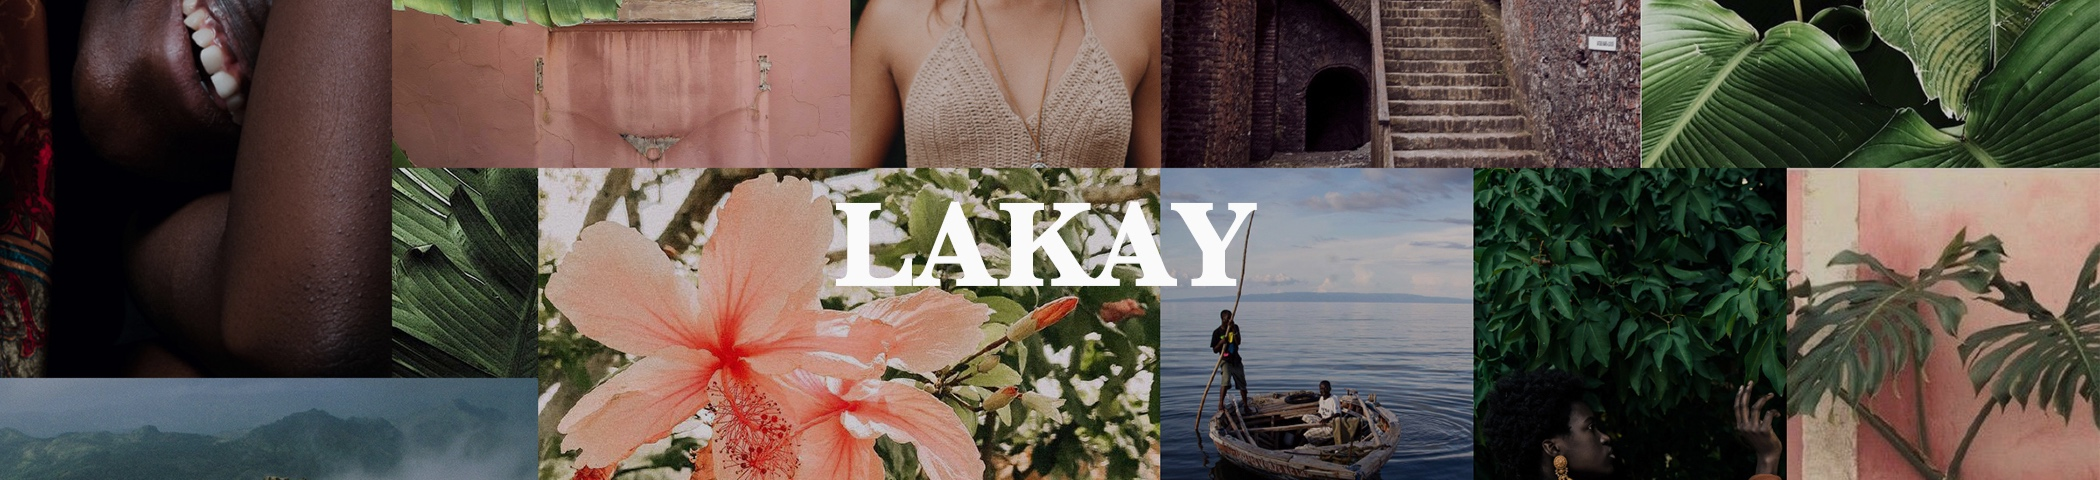 LAKAY+banner+with+text.jpg